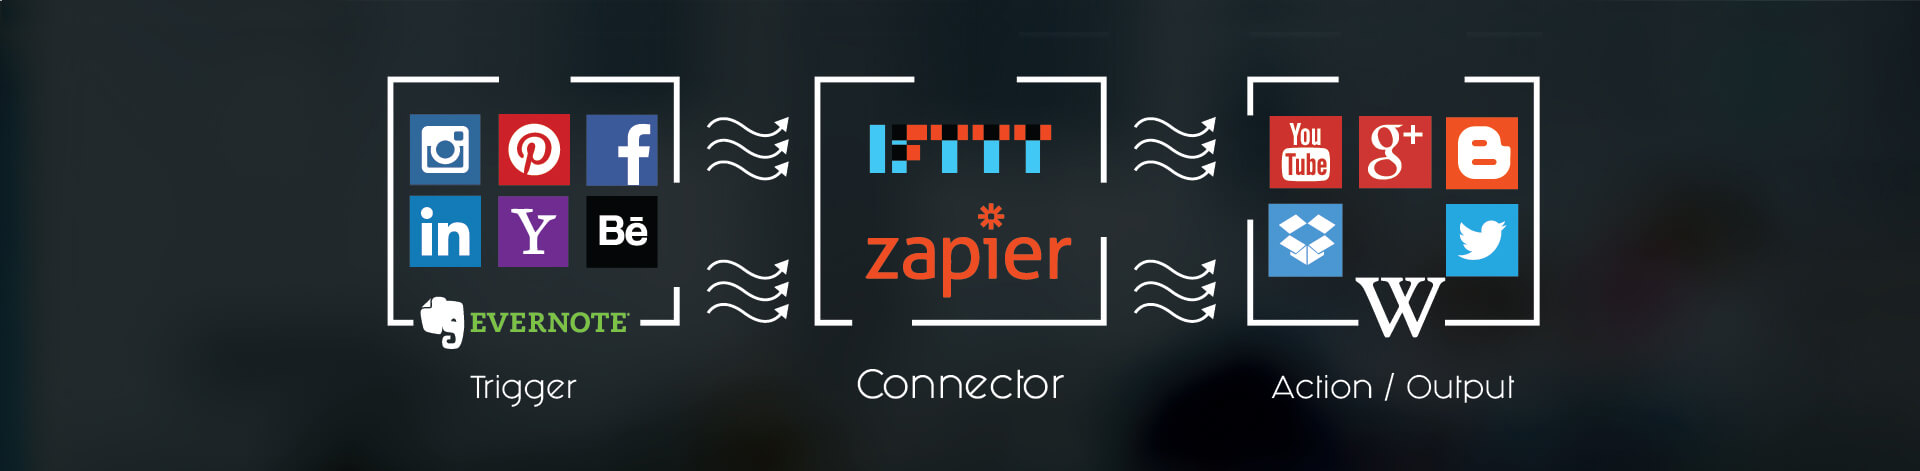 Welcome to the next level of Automation: IFTTT & Zapier